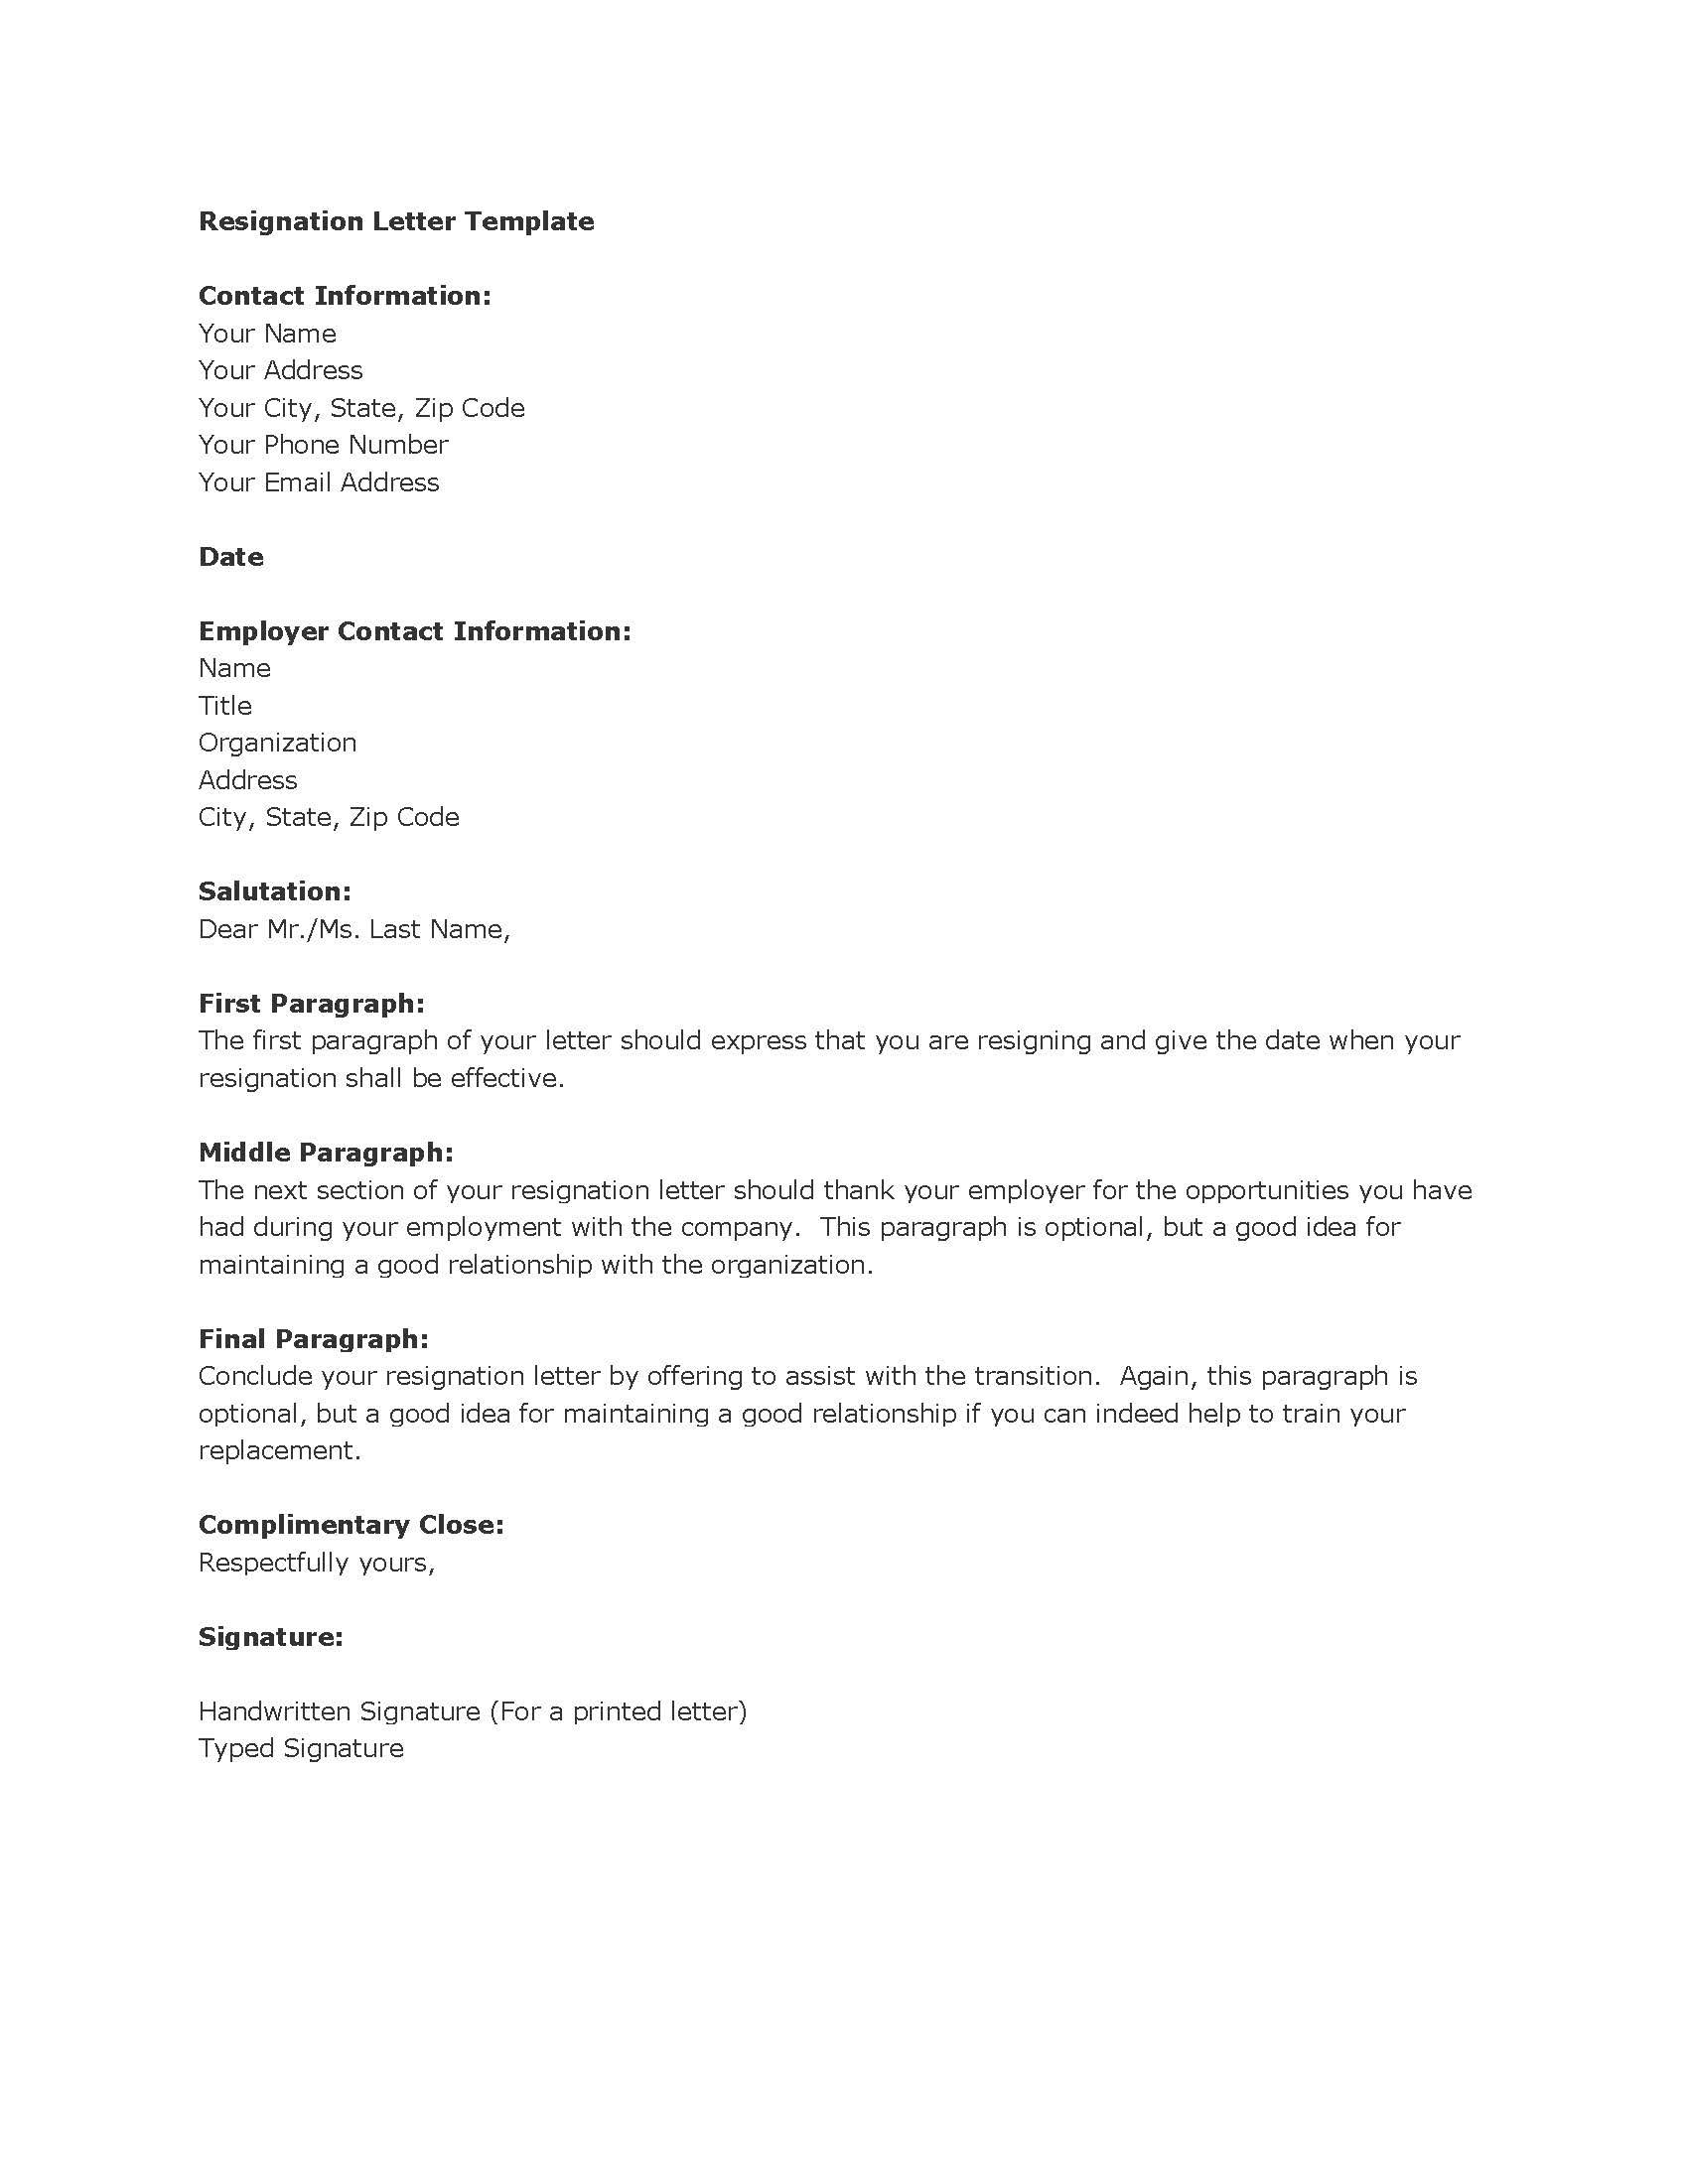 Job Resignation Letter Sample Template Seeabruzzoresignation Letter